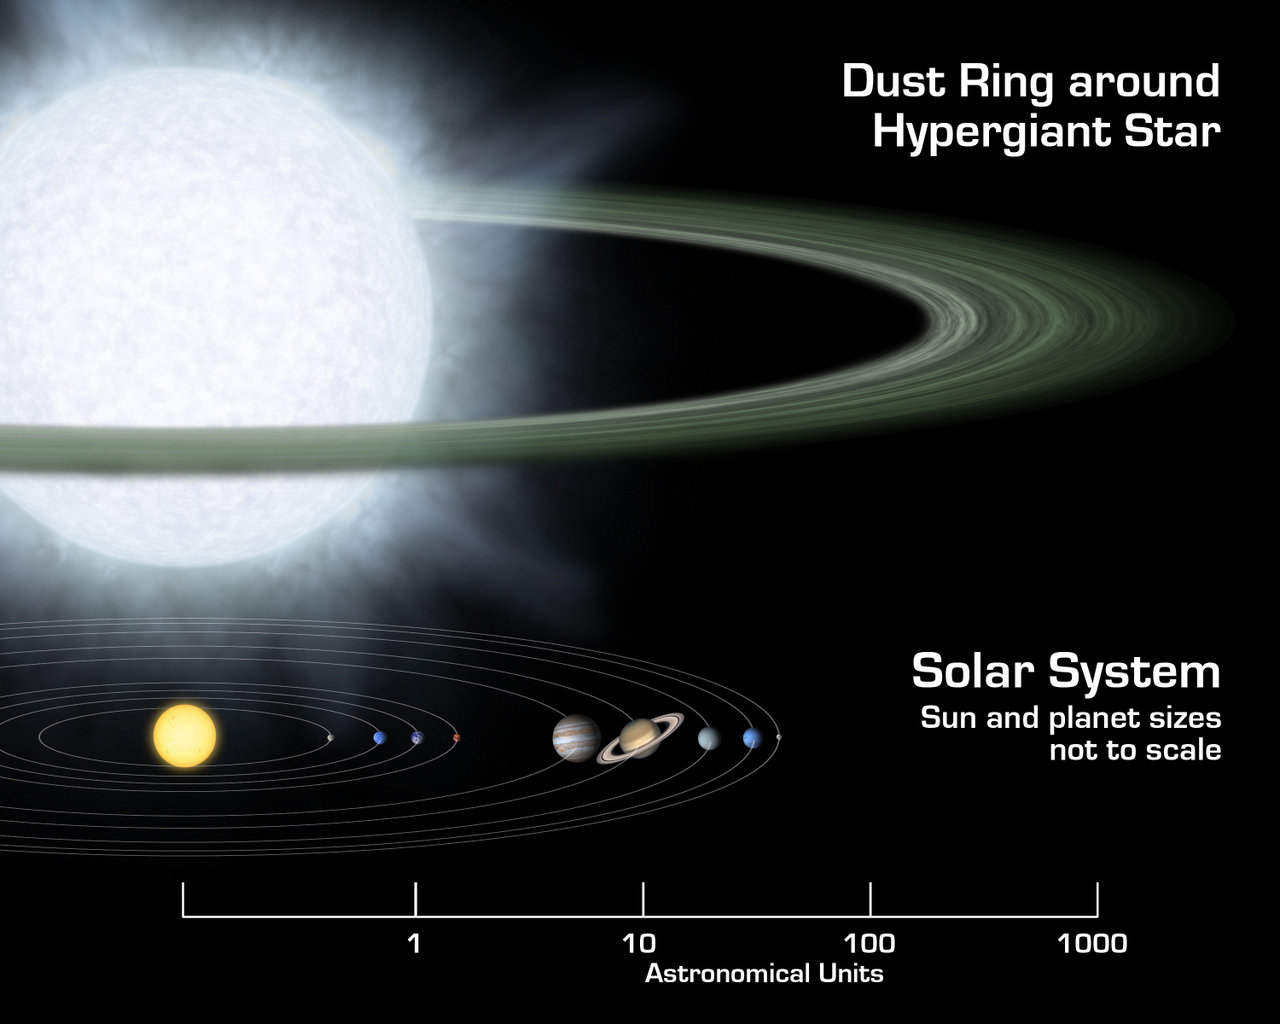 Hypergiant Star And Dust Disk